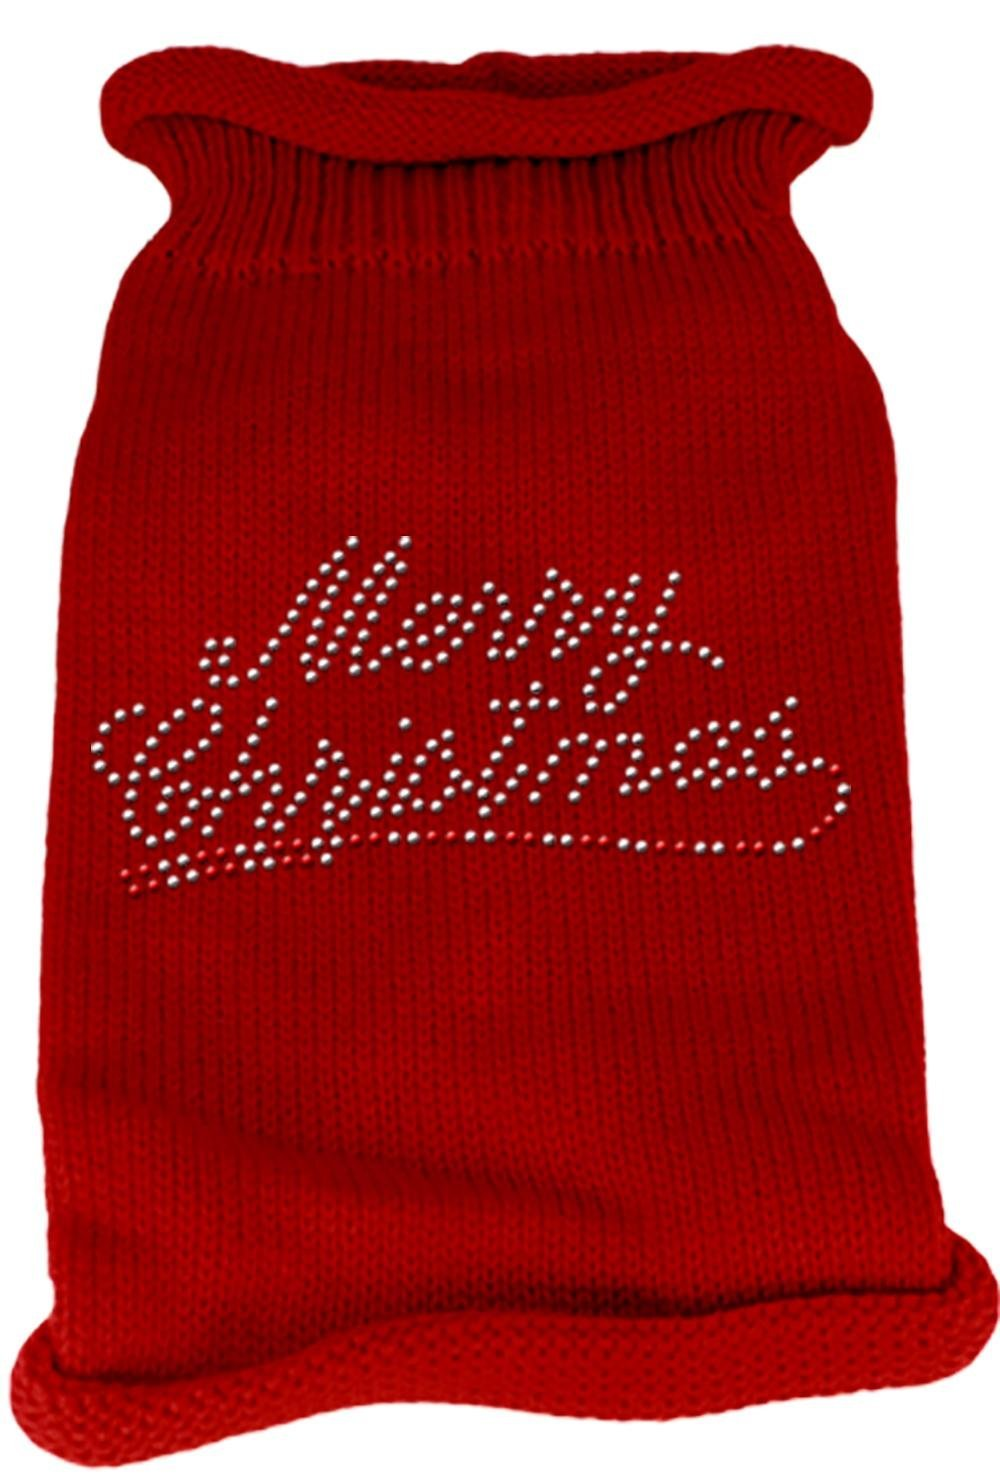 Mirage Pet Products Merry Christmas Rhinestone Knit Pet Sweater, X-Small, Red